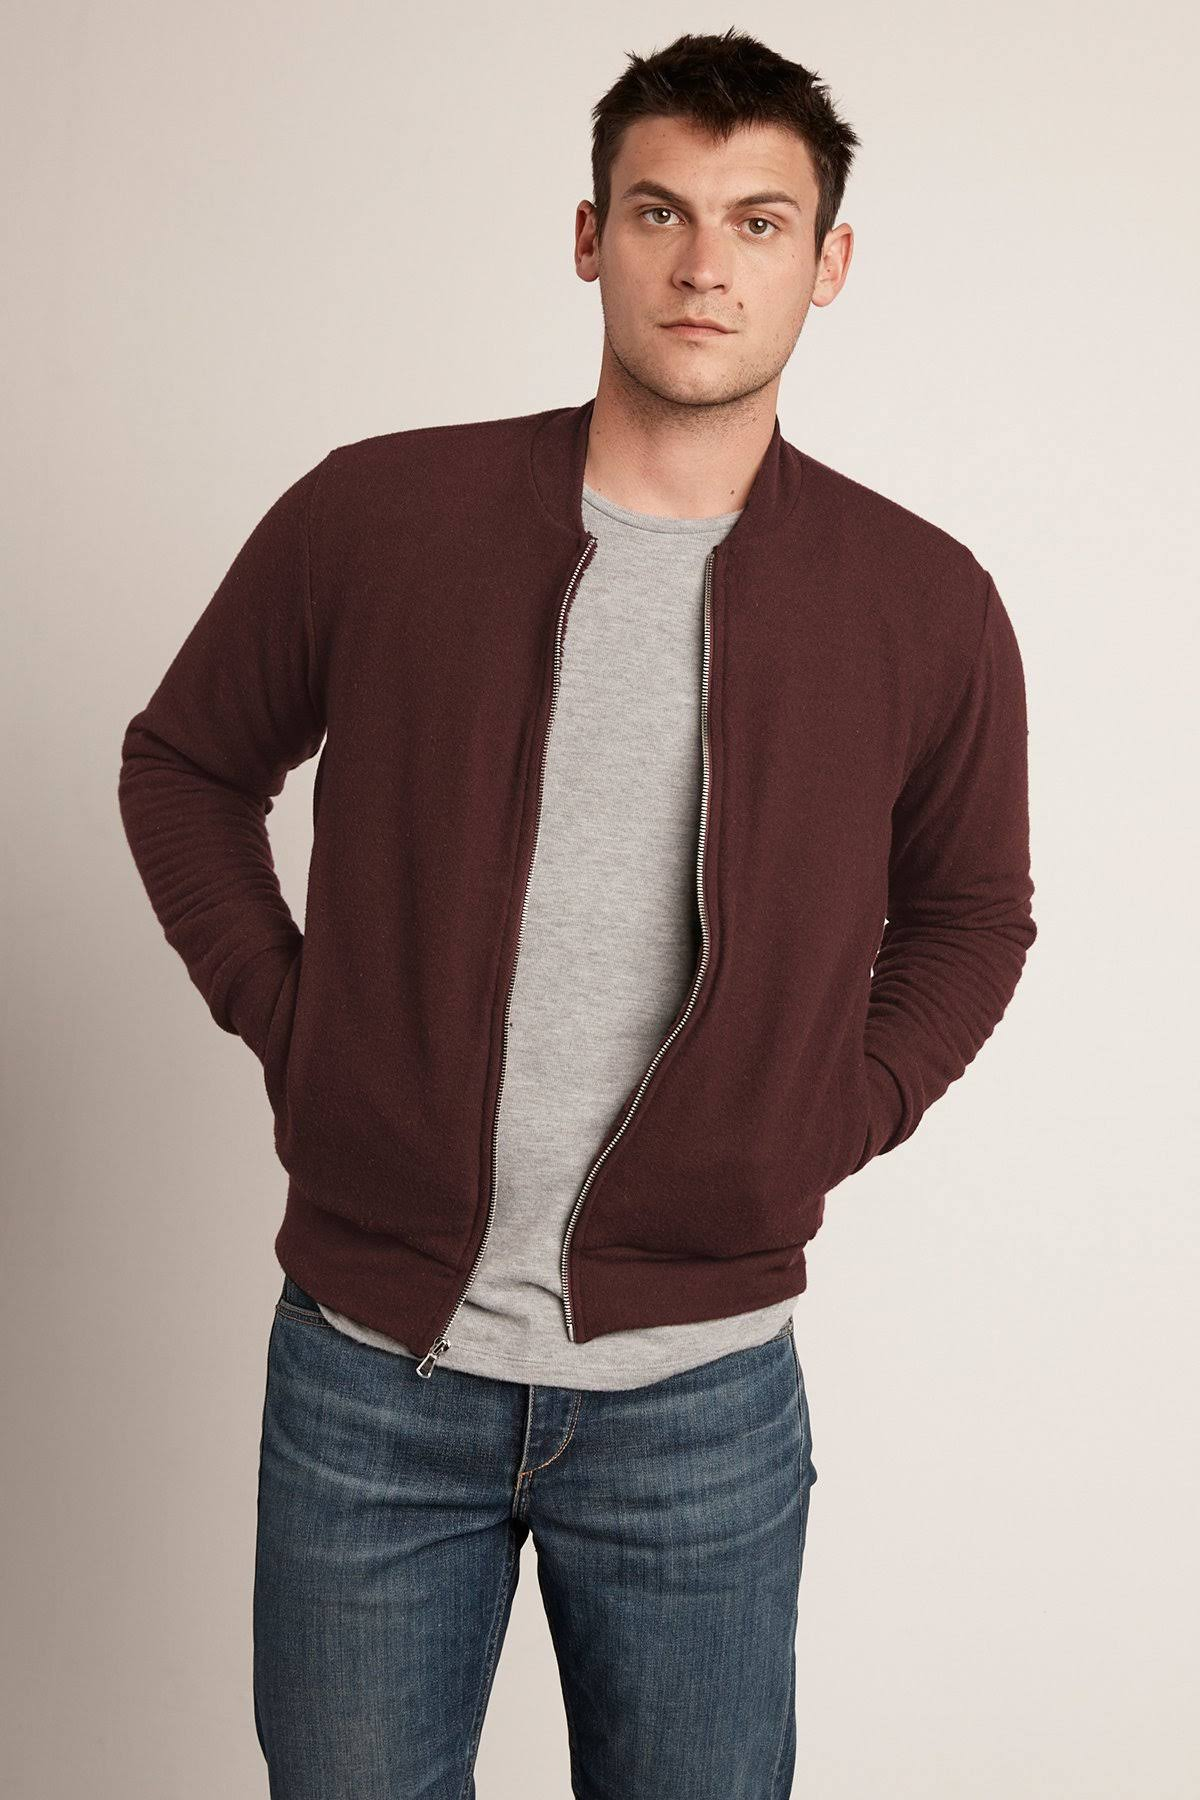 Graham Velvet Cazadora Jersey Cozy Raisin Aviador De l Cabe amp; Spencer By n8wYSfq8